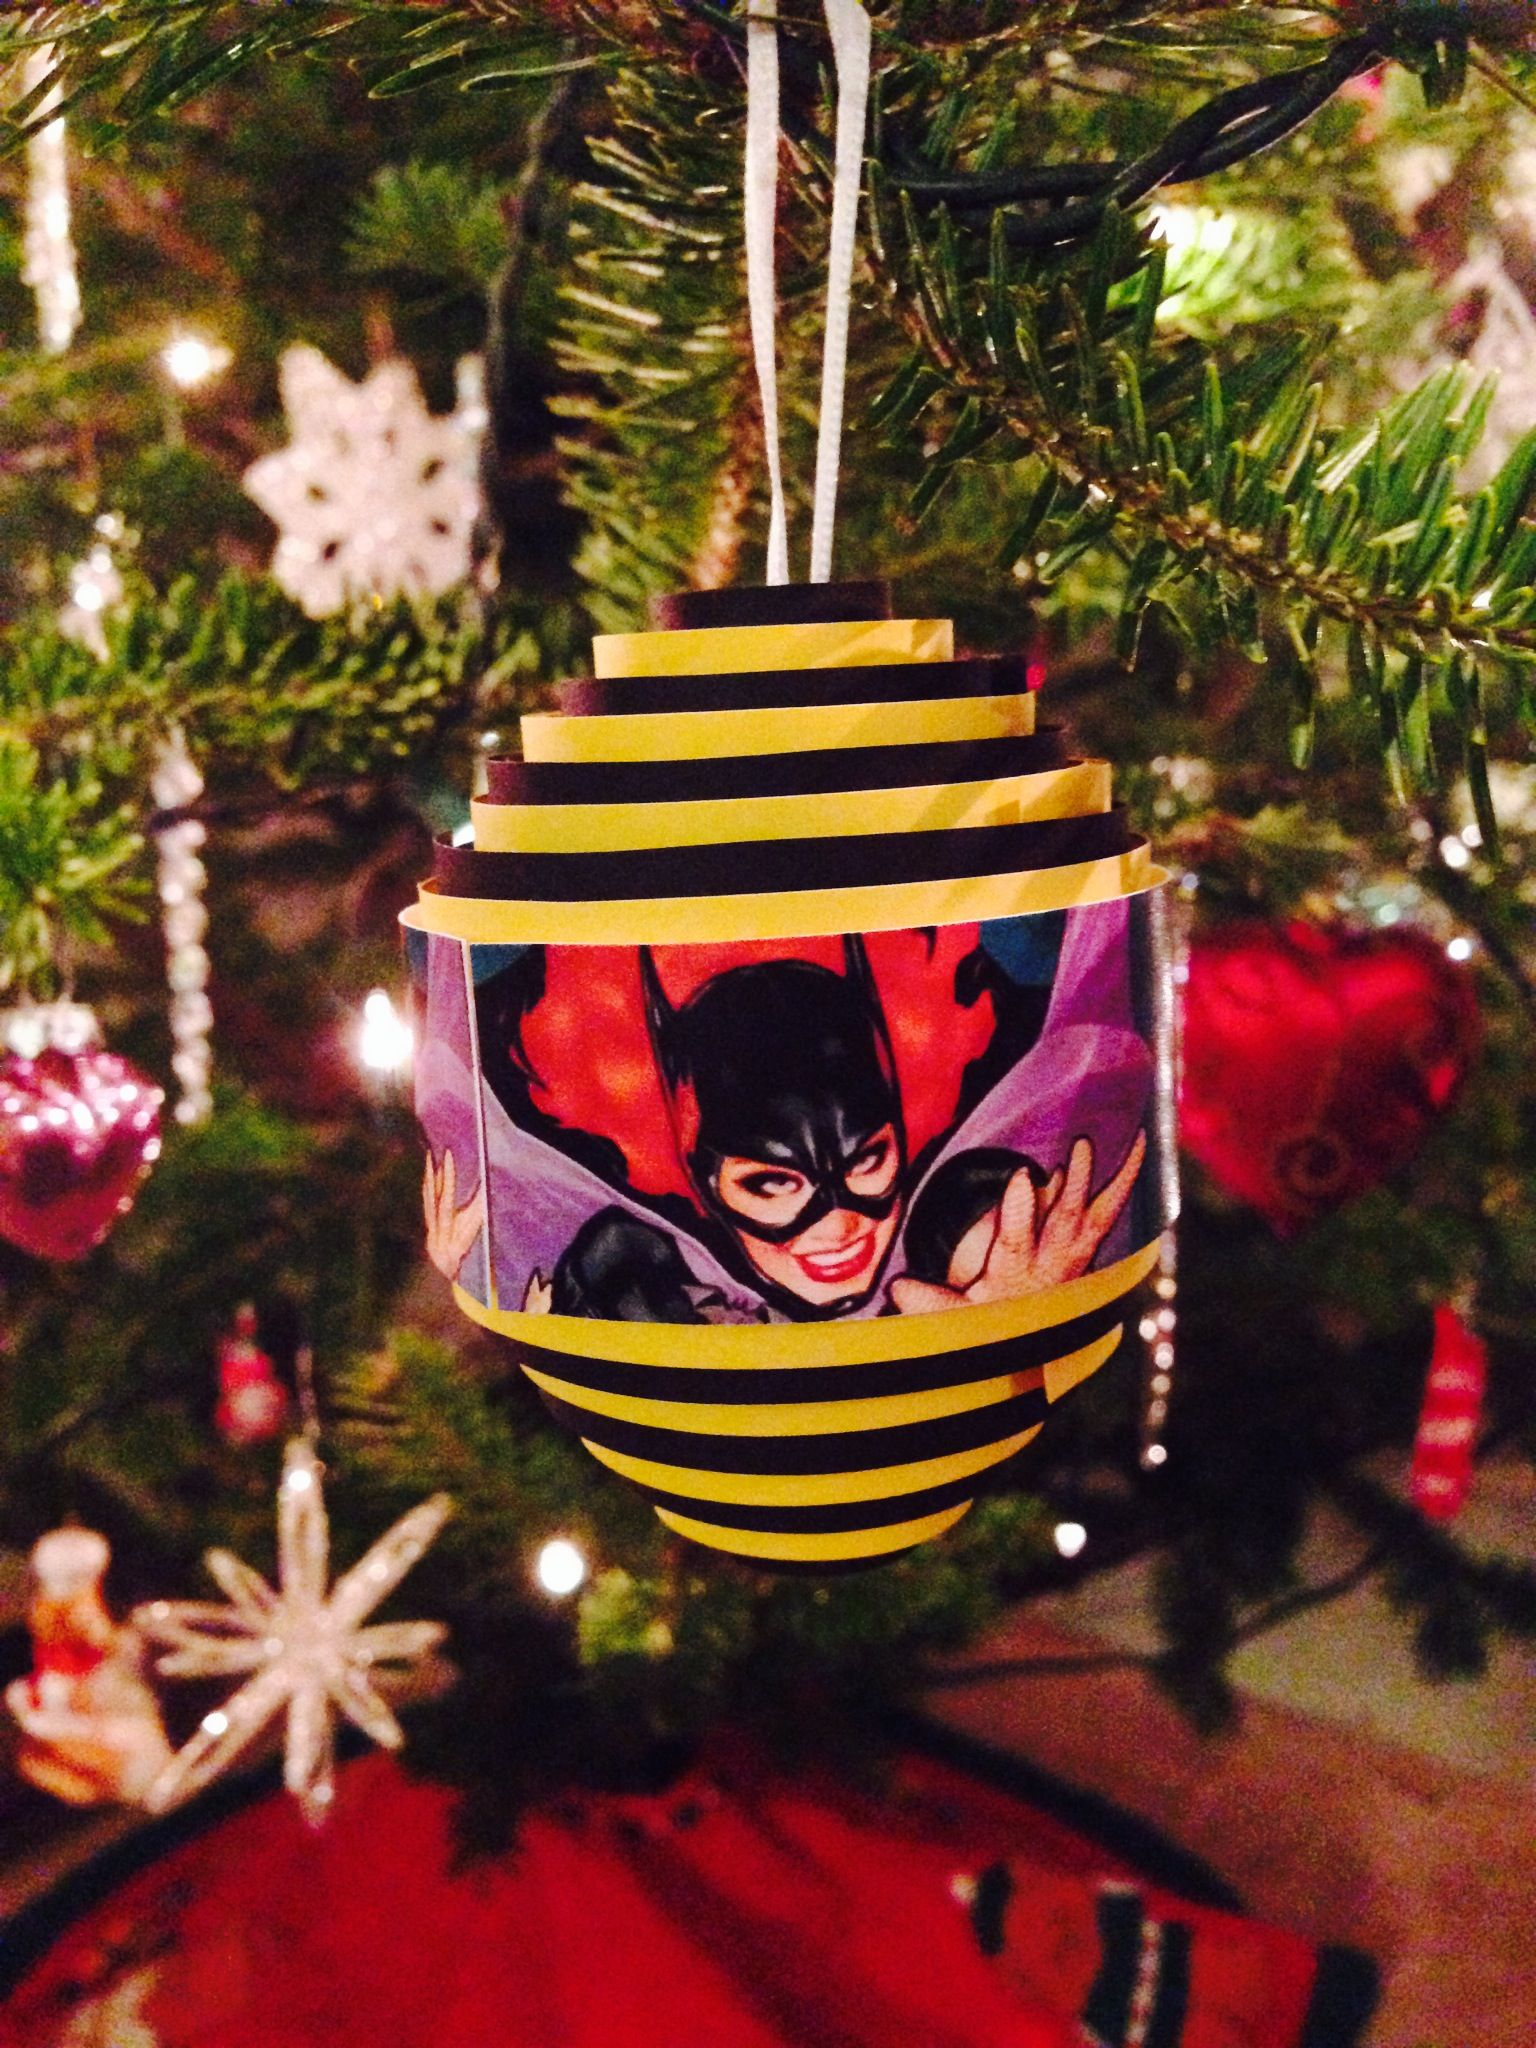 diy super hero ornaments - Google Search | Christmas tree ...